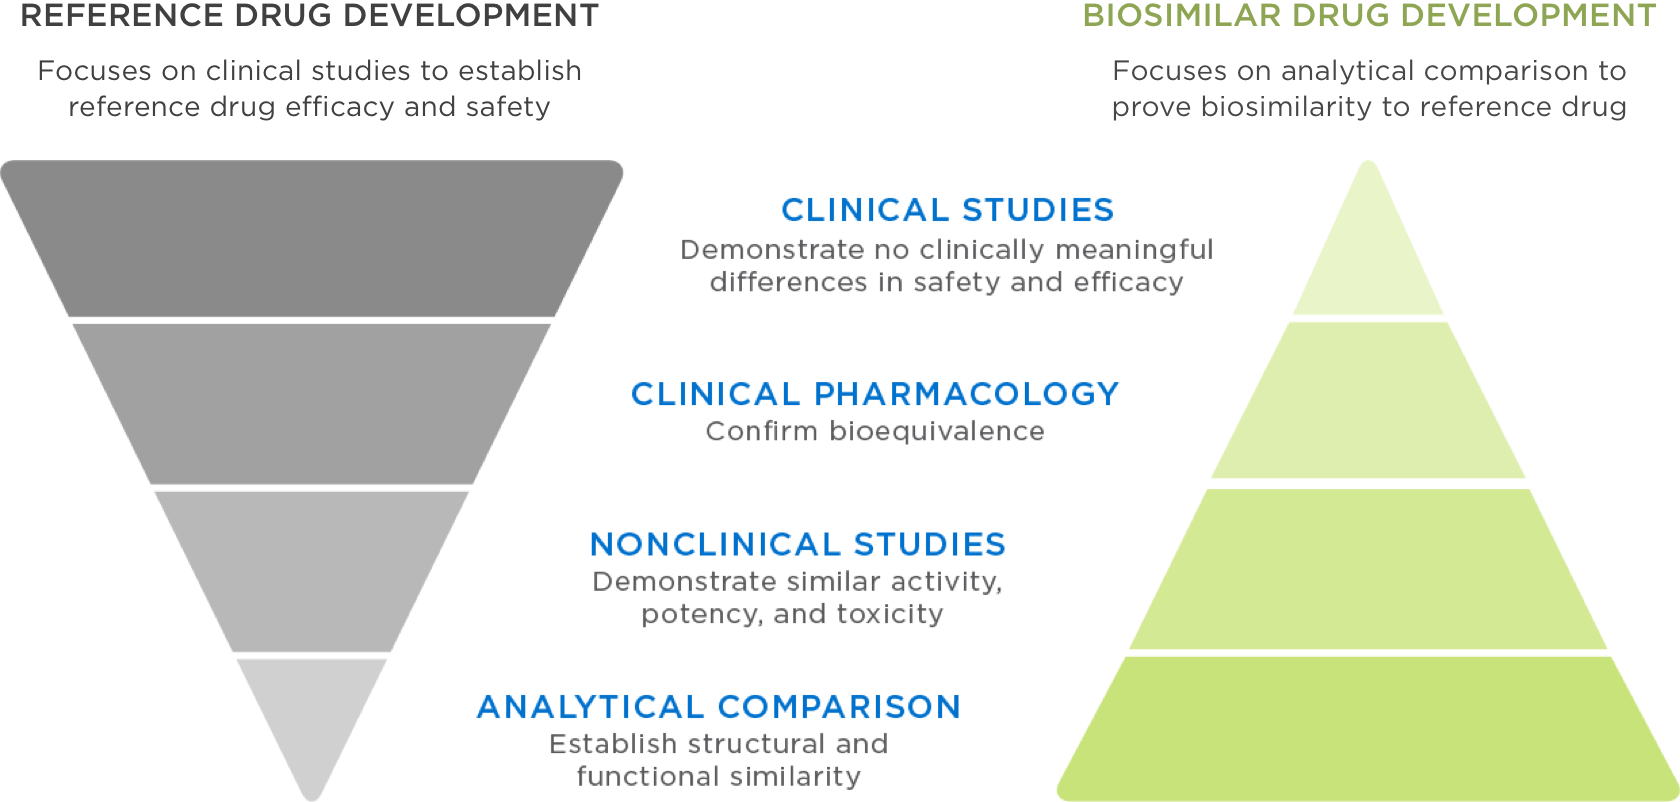 Reference and biosimilar drugs follow distinct yet rigorous standards for FDA approval